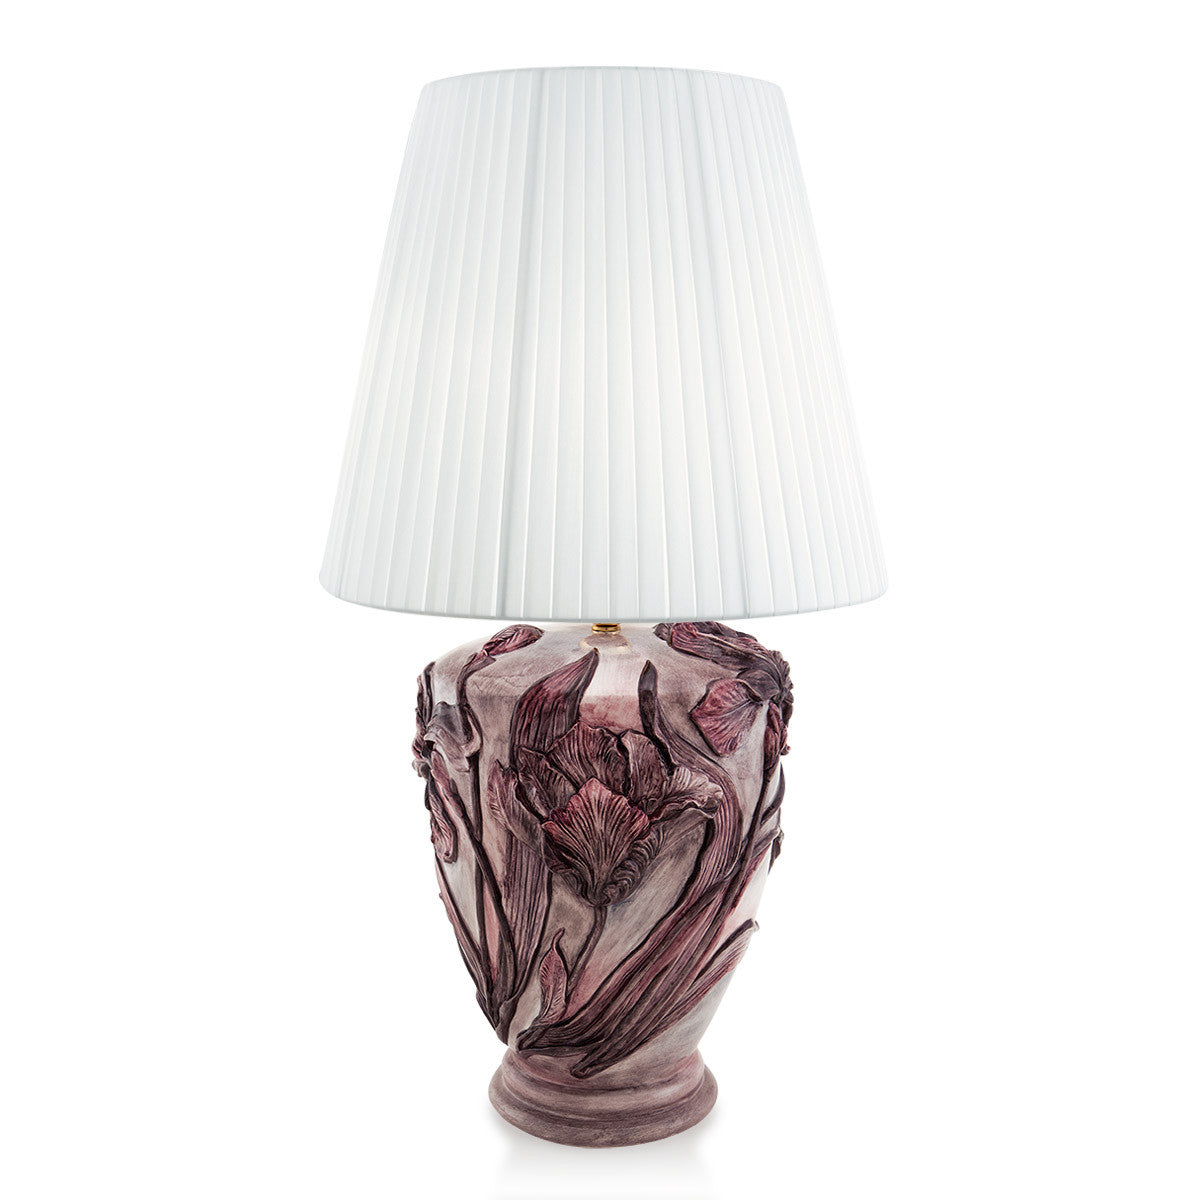 Ceramic Table Lamp With Iris Relief